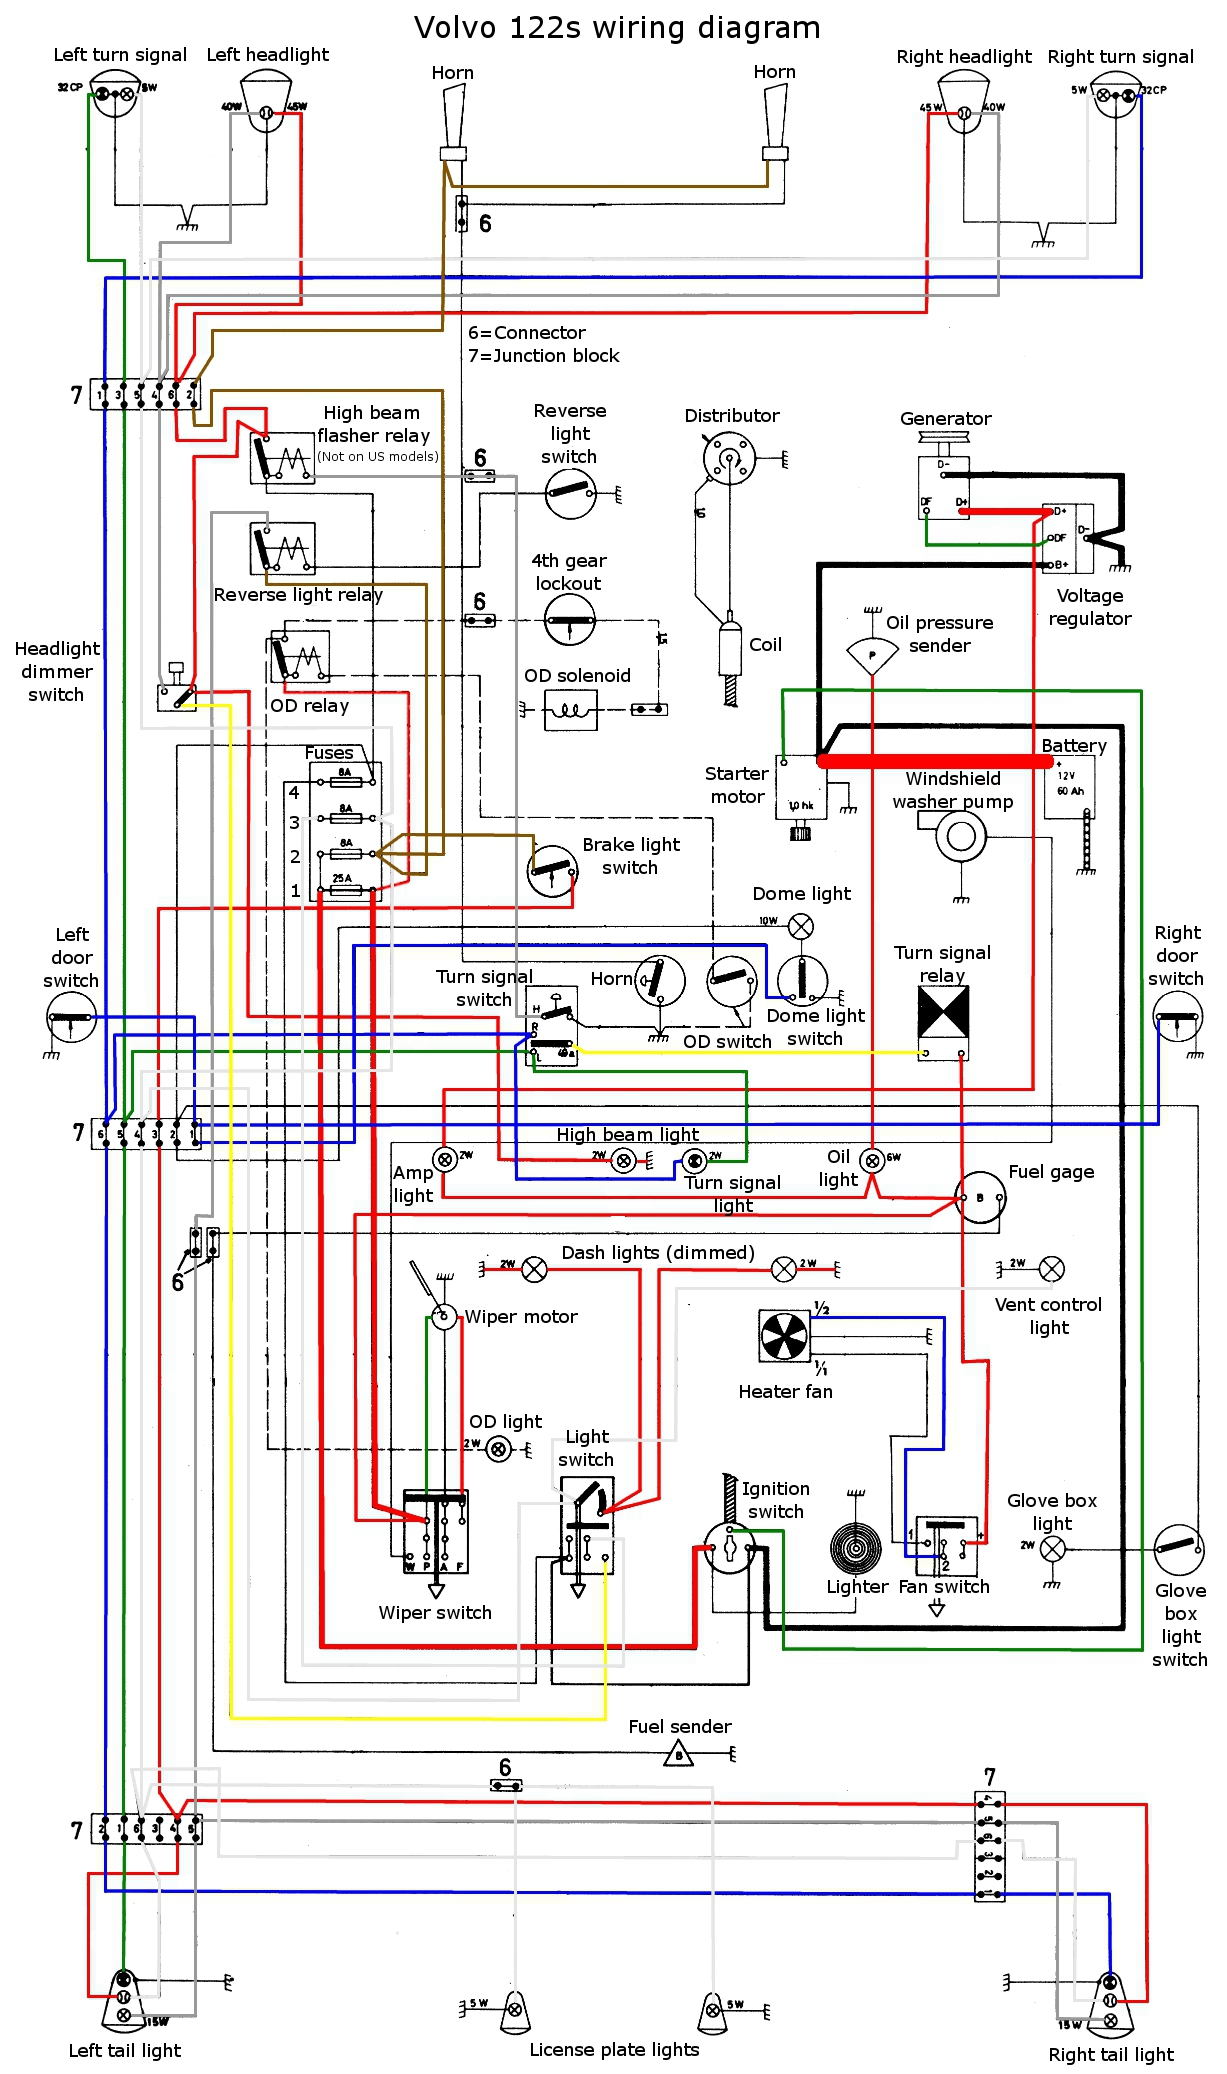 1965 volvo wiring diagram - wiring diagram direct craft-pipe -  craft-pipe.siciliabeb.it  craft-pipe.siciliabeb.it